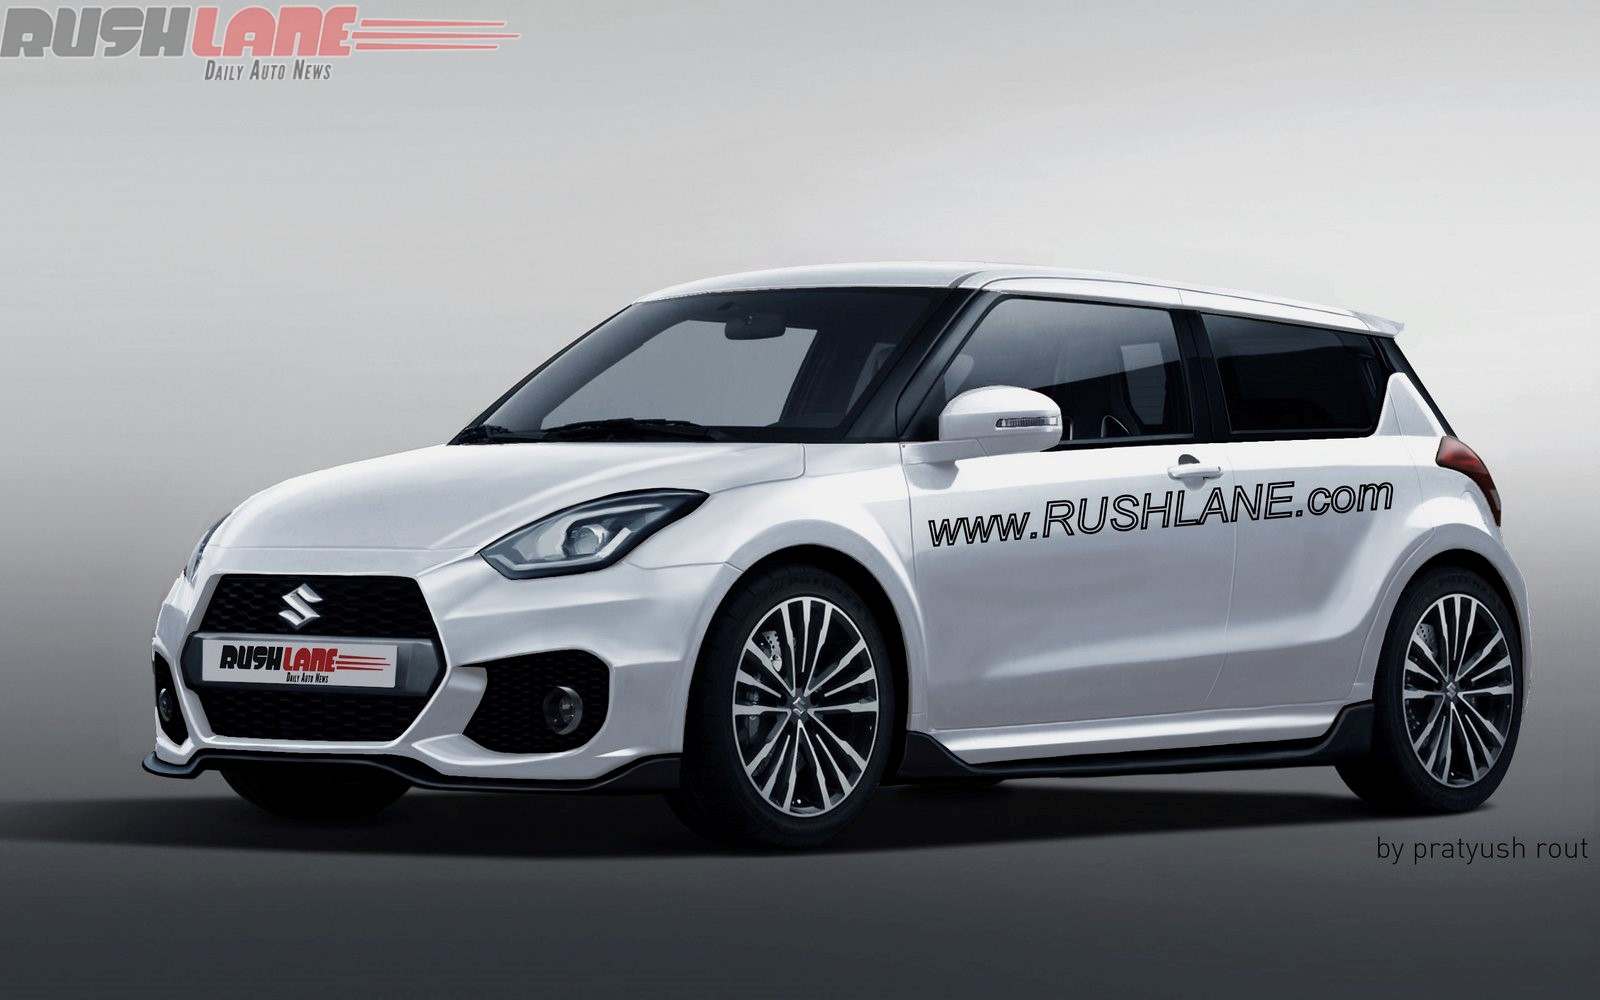 2017 Maruti Suzuki Swift Looks Aggressive And Appealing